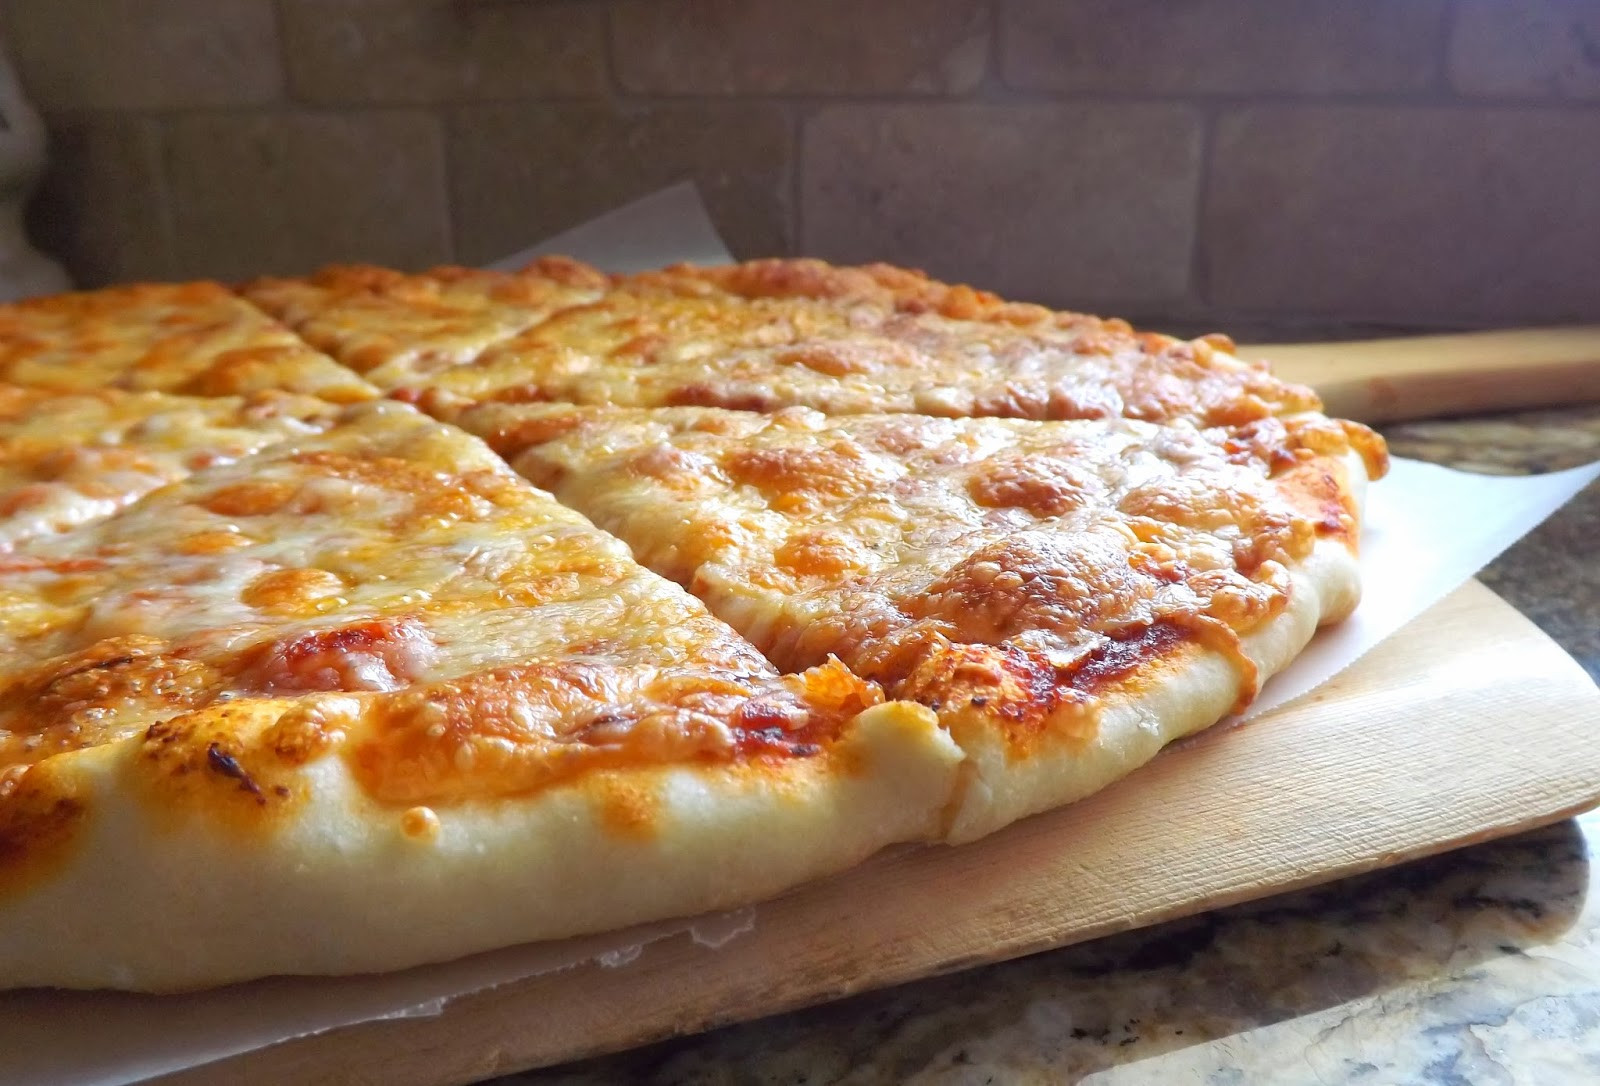 Pizza Dough No Yeast  The Bake f Flunkie Baking Powder no yeast Pizza Crust